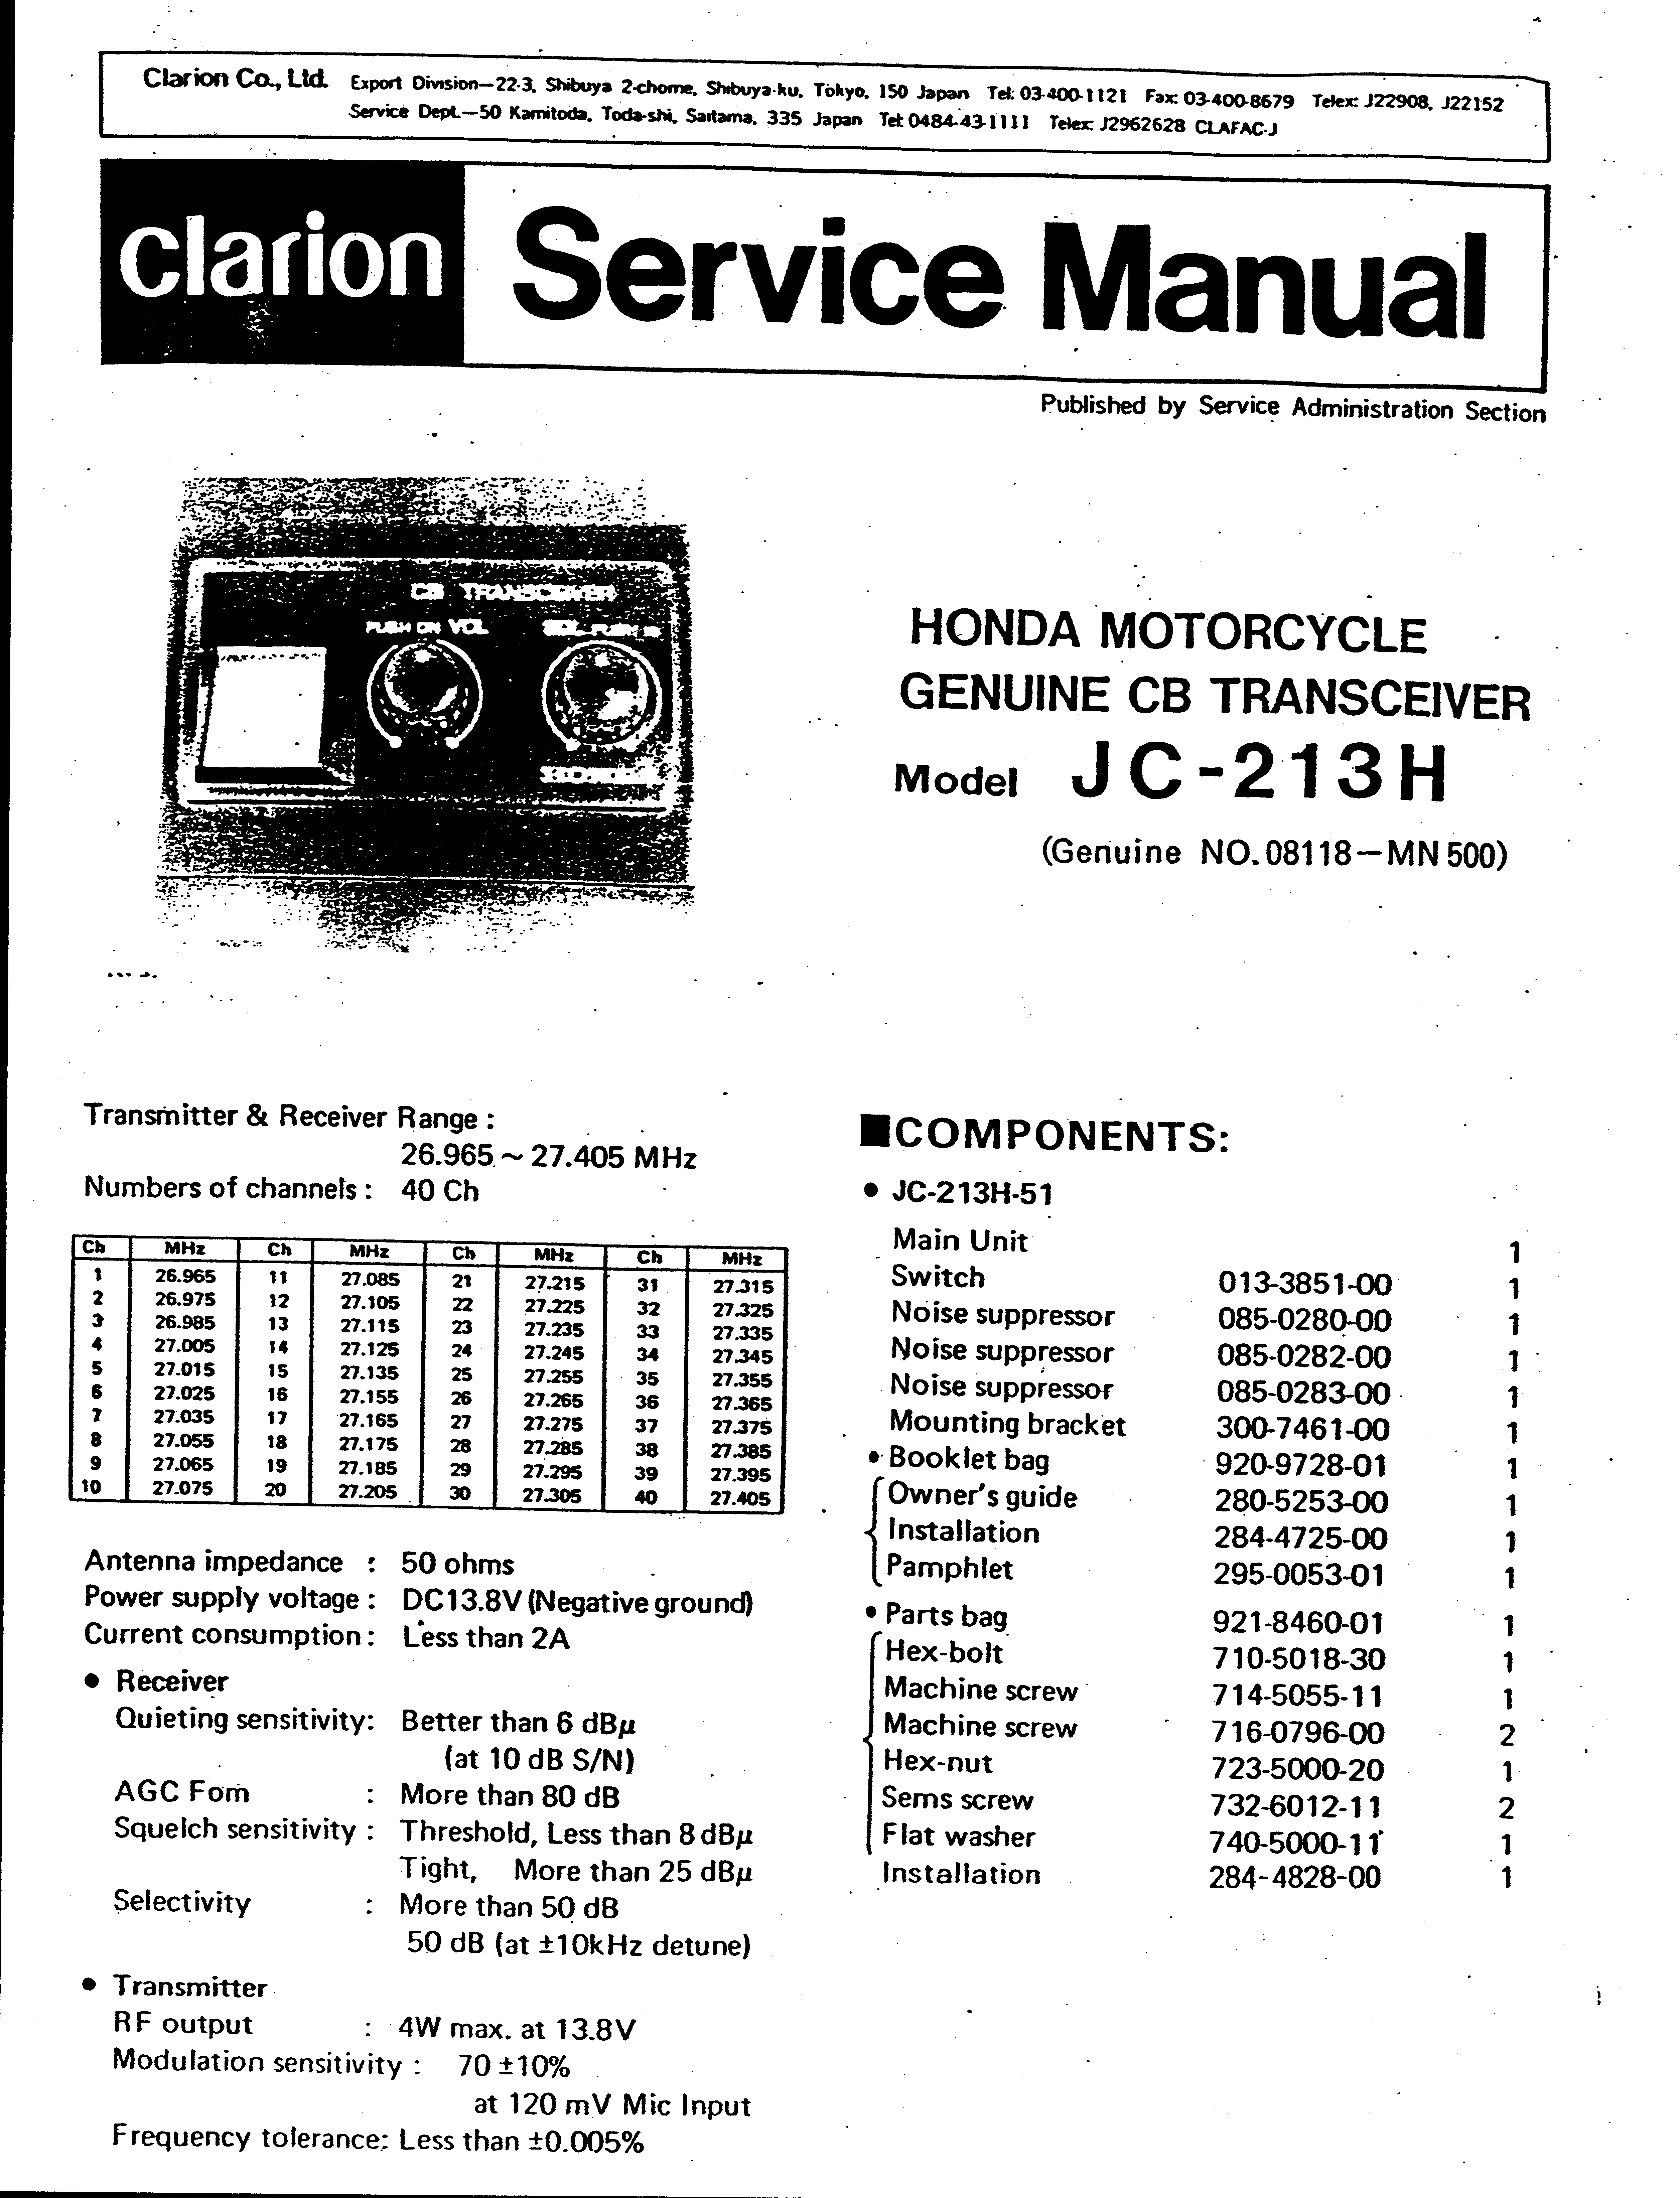 Service Manual For Honda Clarion Cb Transceiver All Wiring Diagram Free Download Schematic